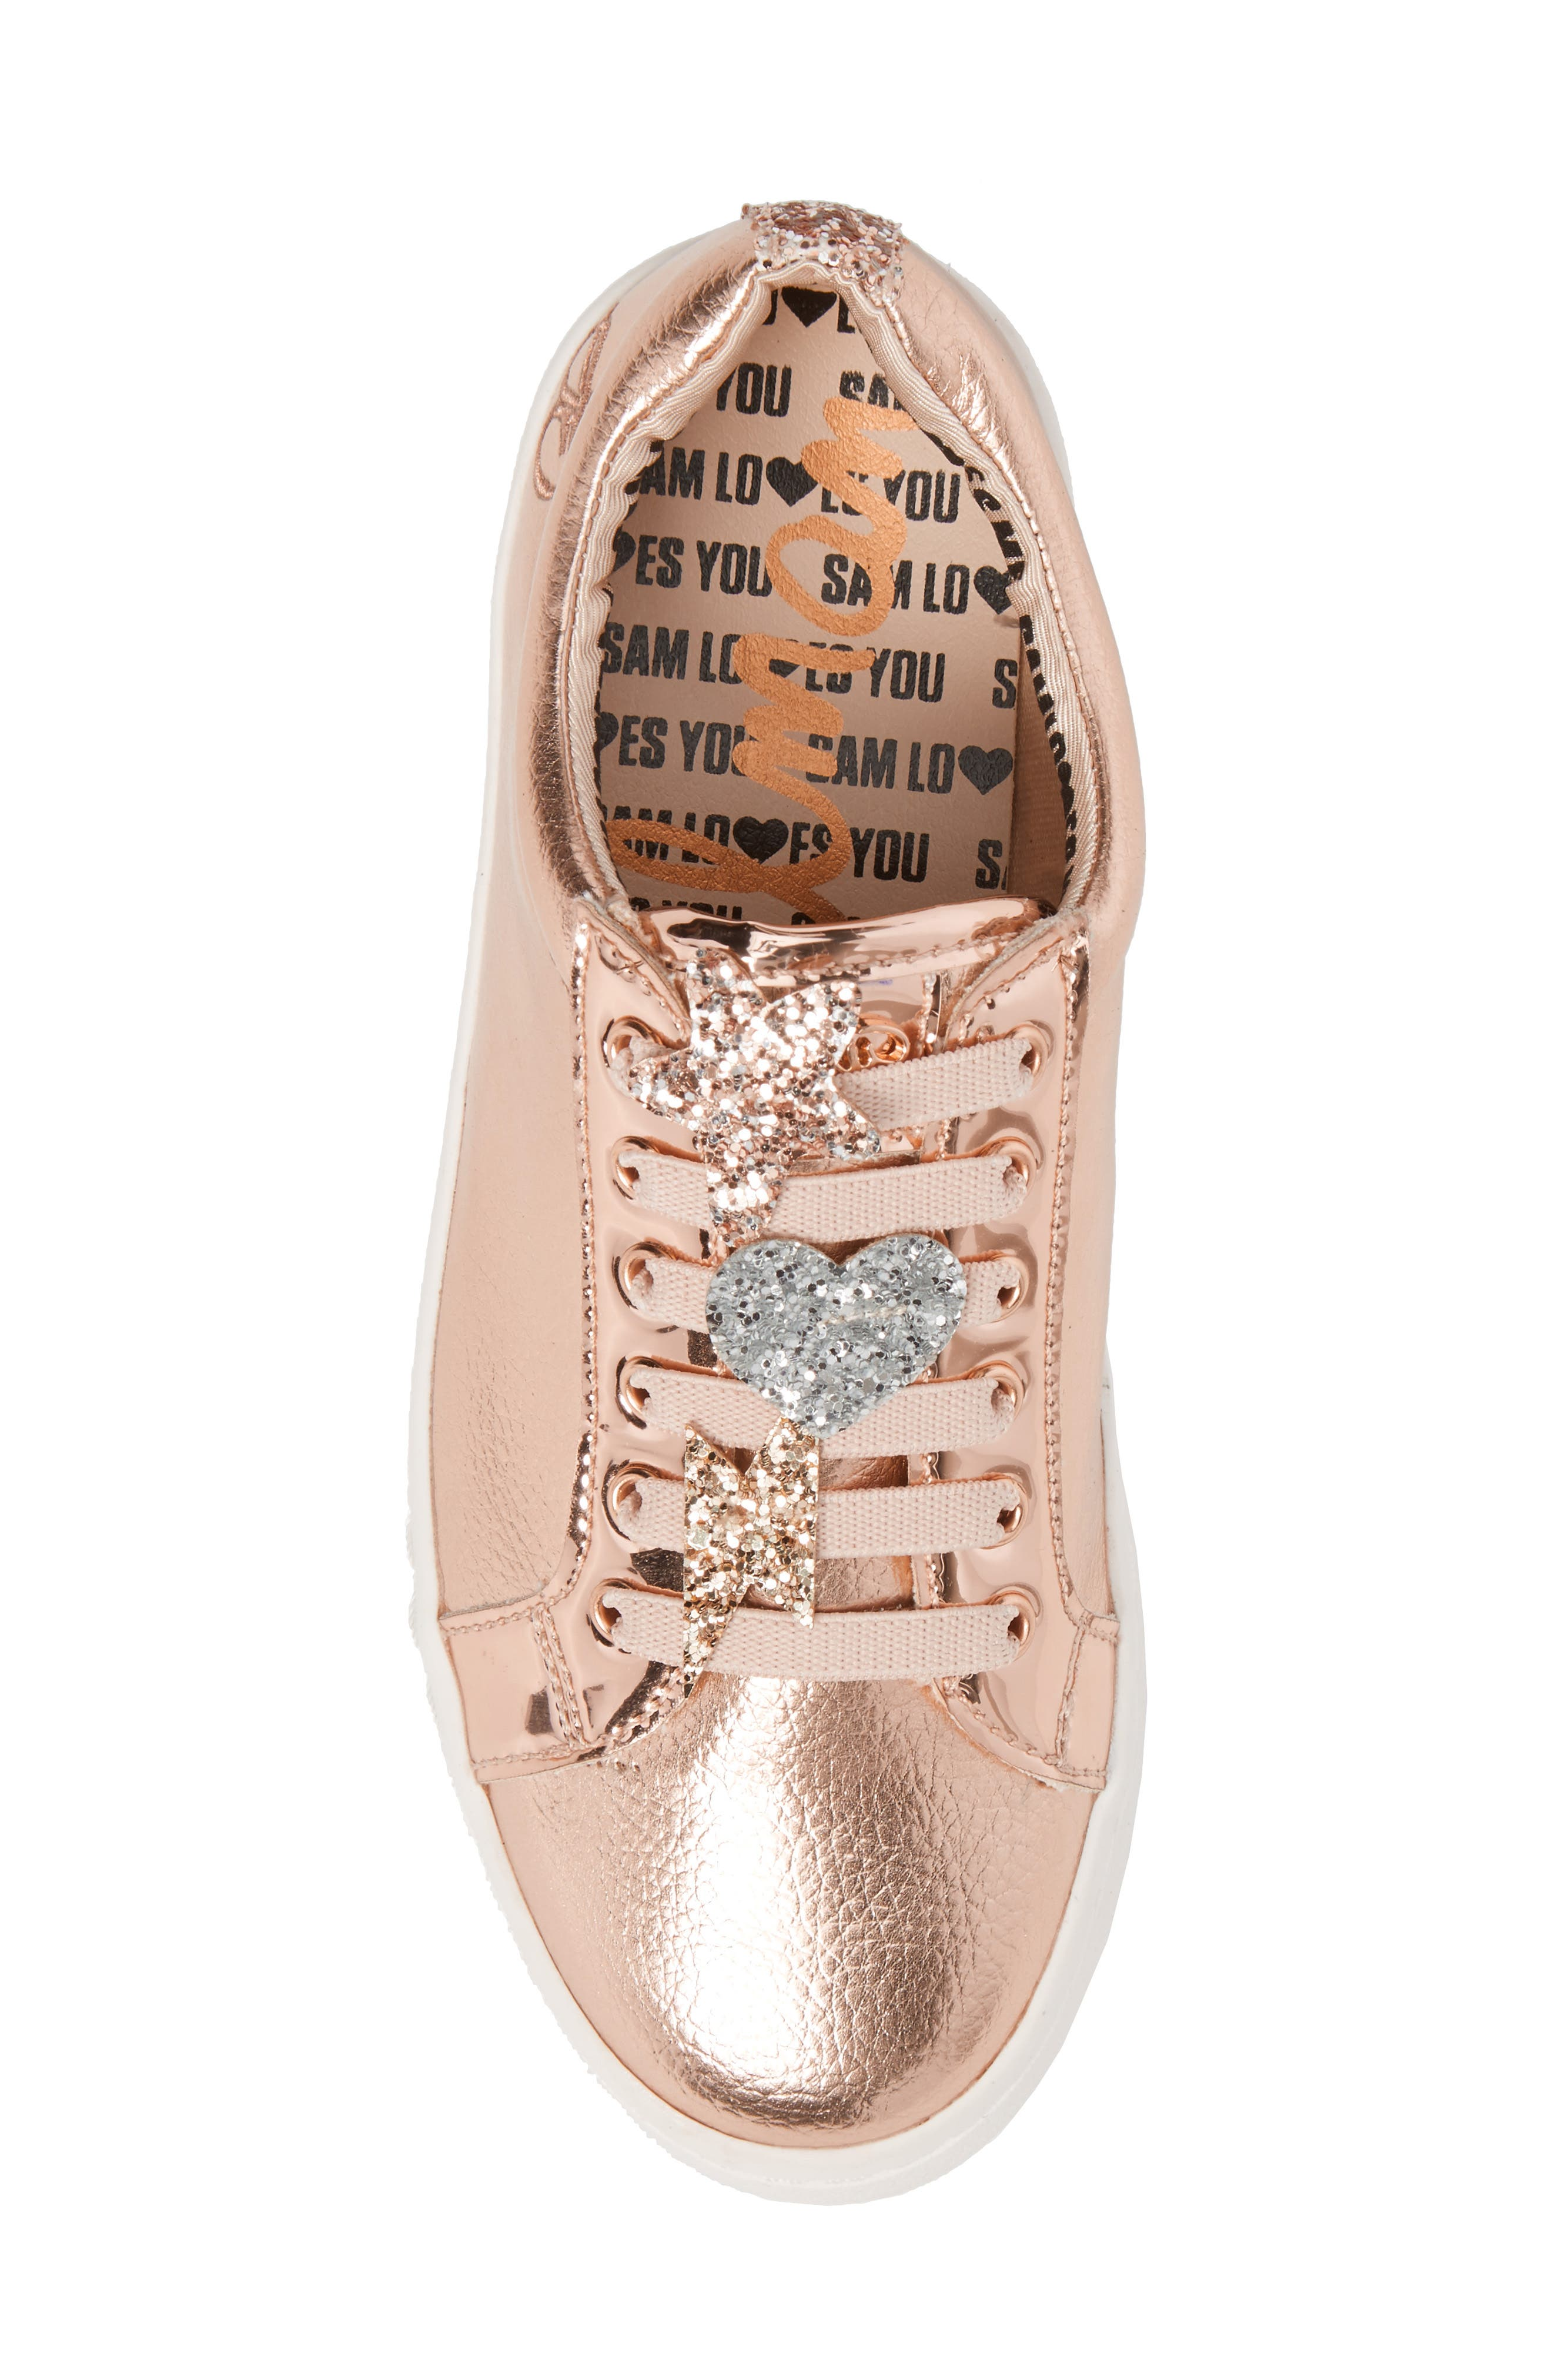 Blane Sammie Slip-On Sneaker,                             Alternate thumbnail 5, color,                             Rose Gold Faux Leather